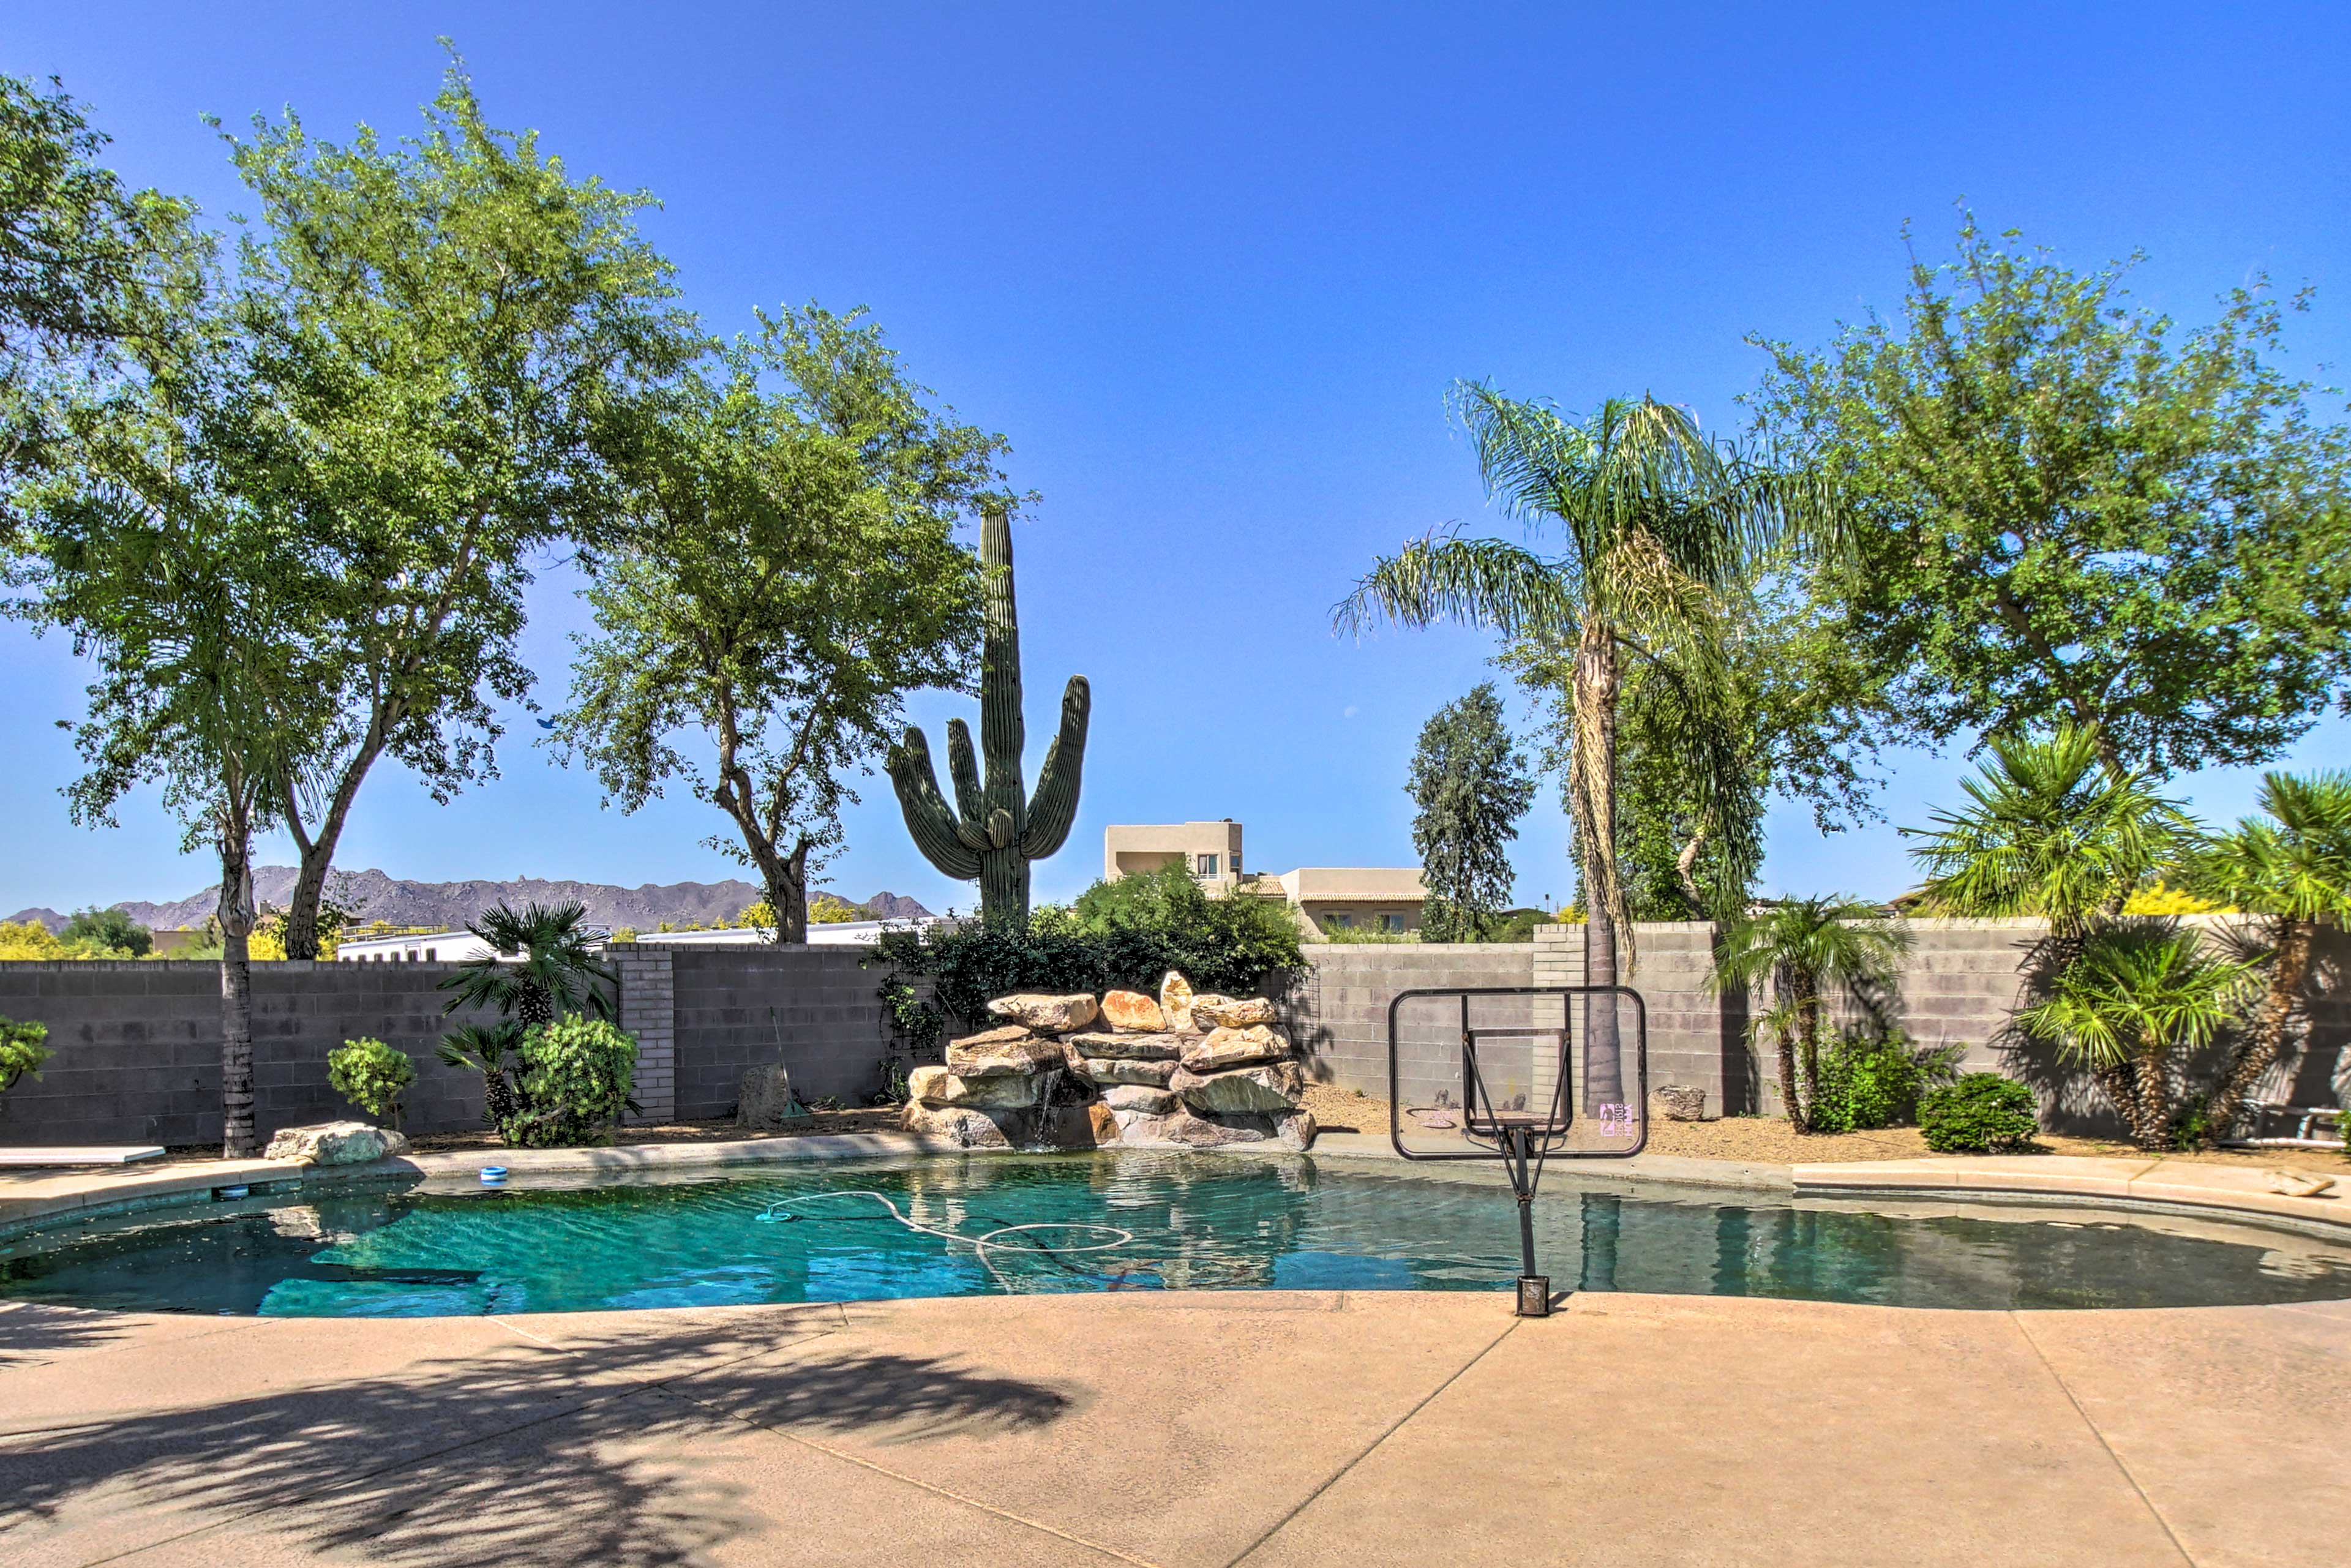 This tropical pool area is the perfect place to soak up the Arizona sun.